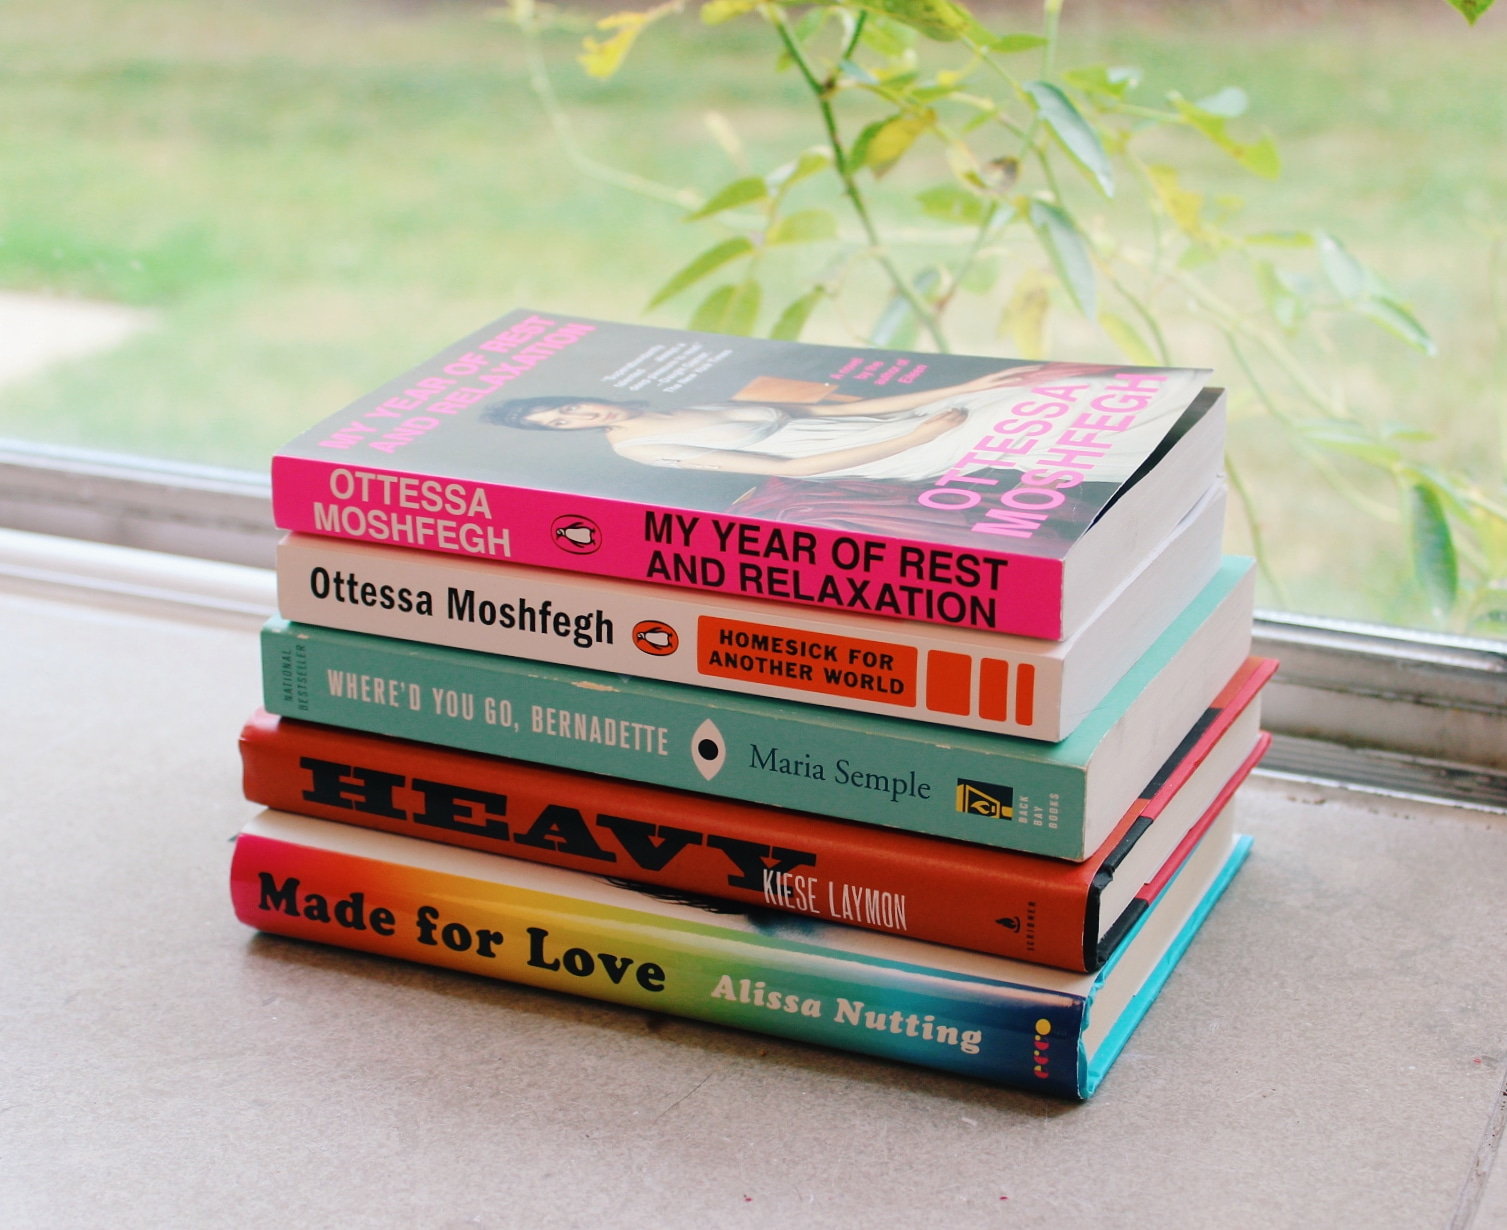 Our summer reading stack